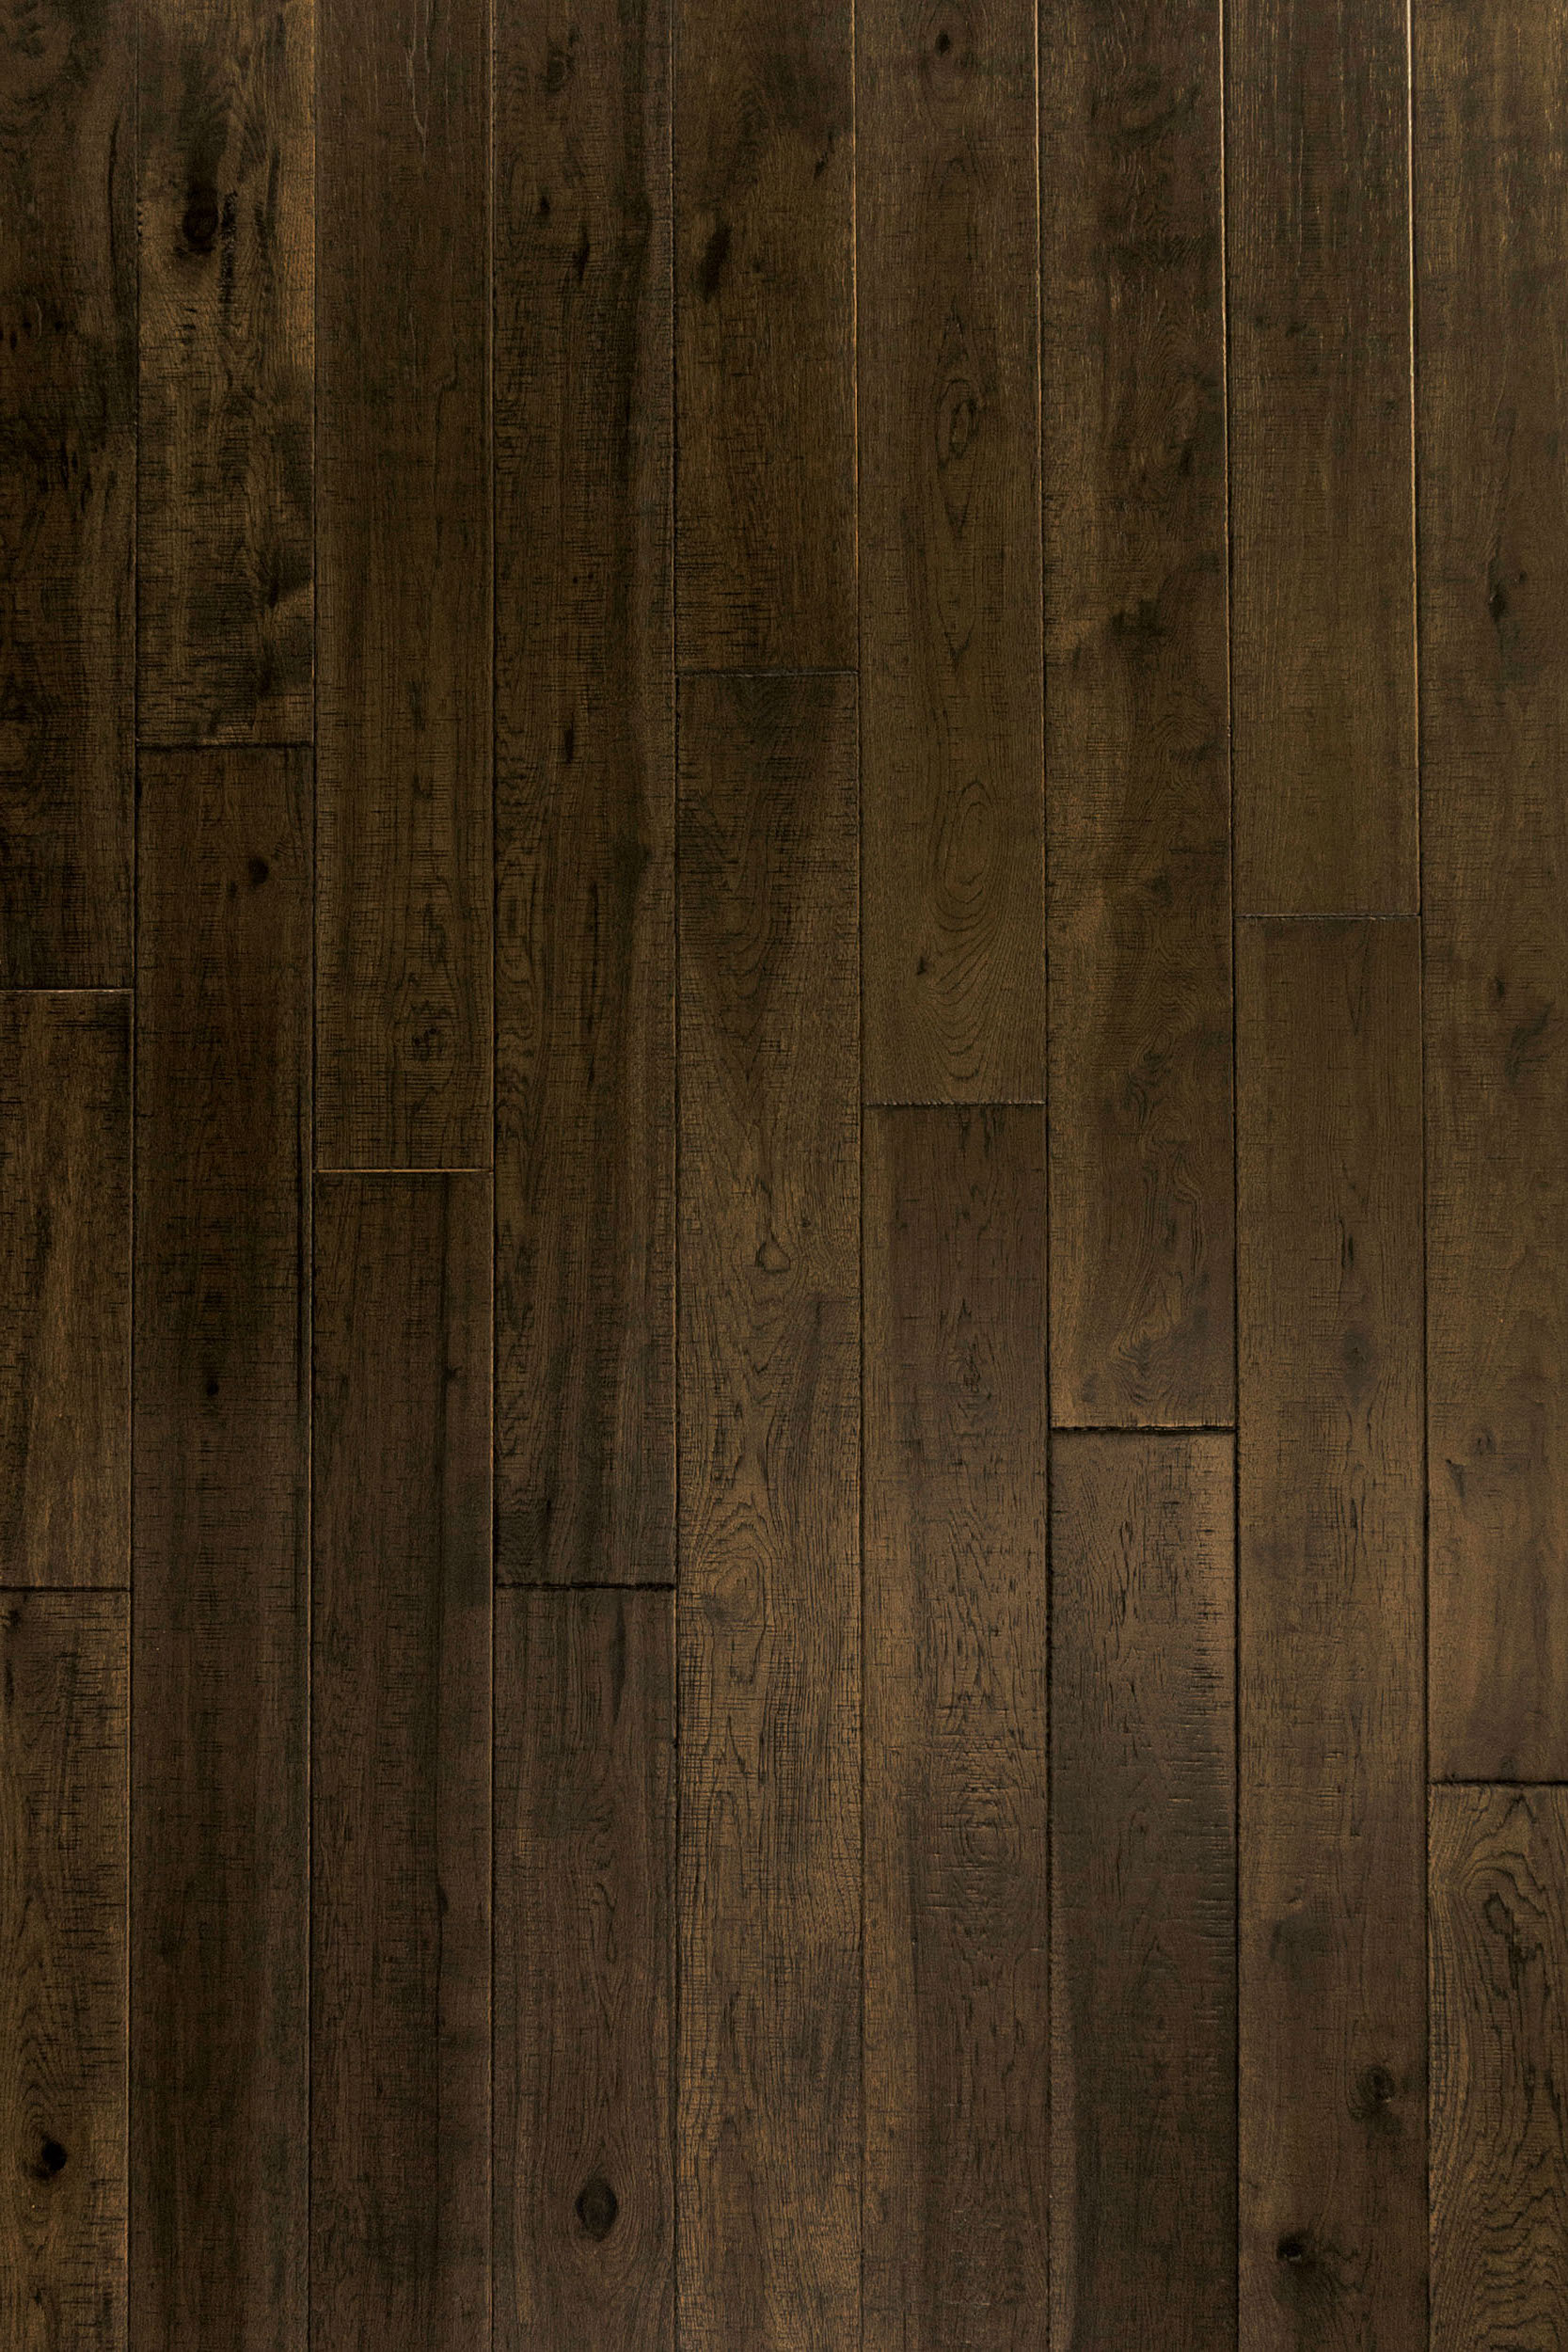 RSHI-06 | Whiskey Brown | Hickory